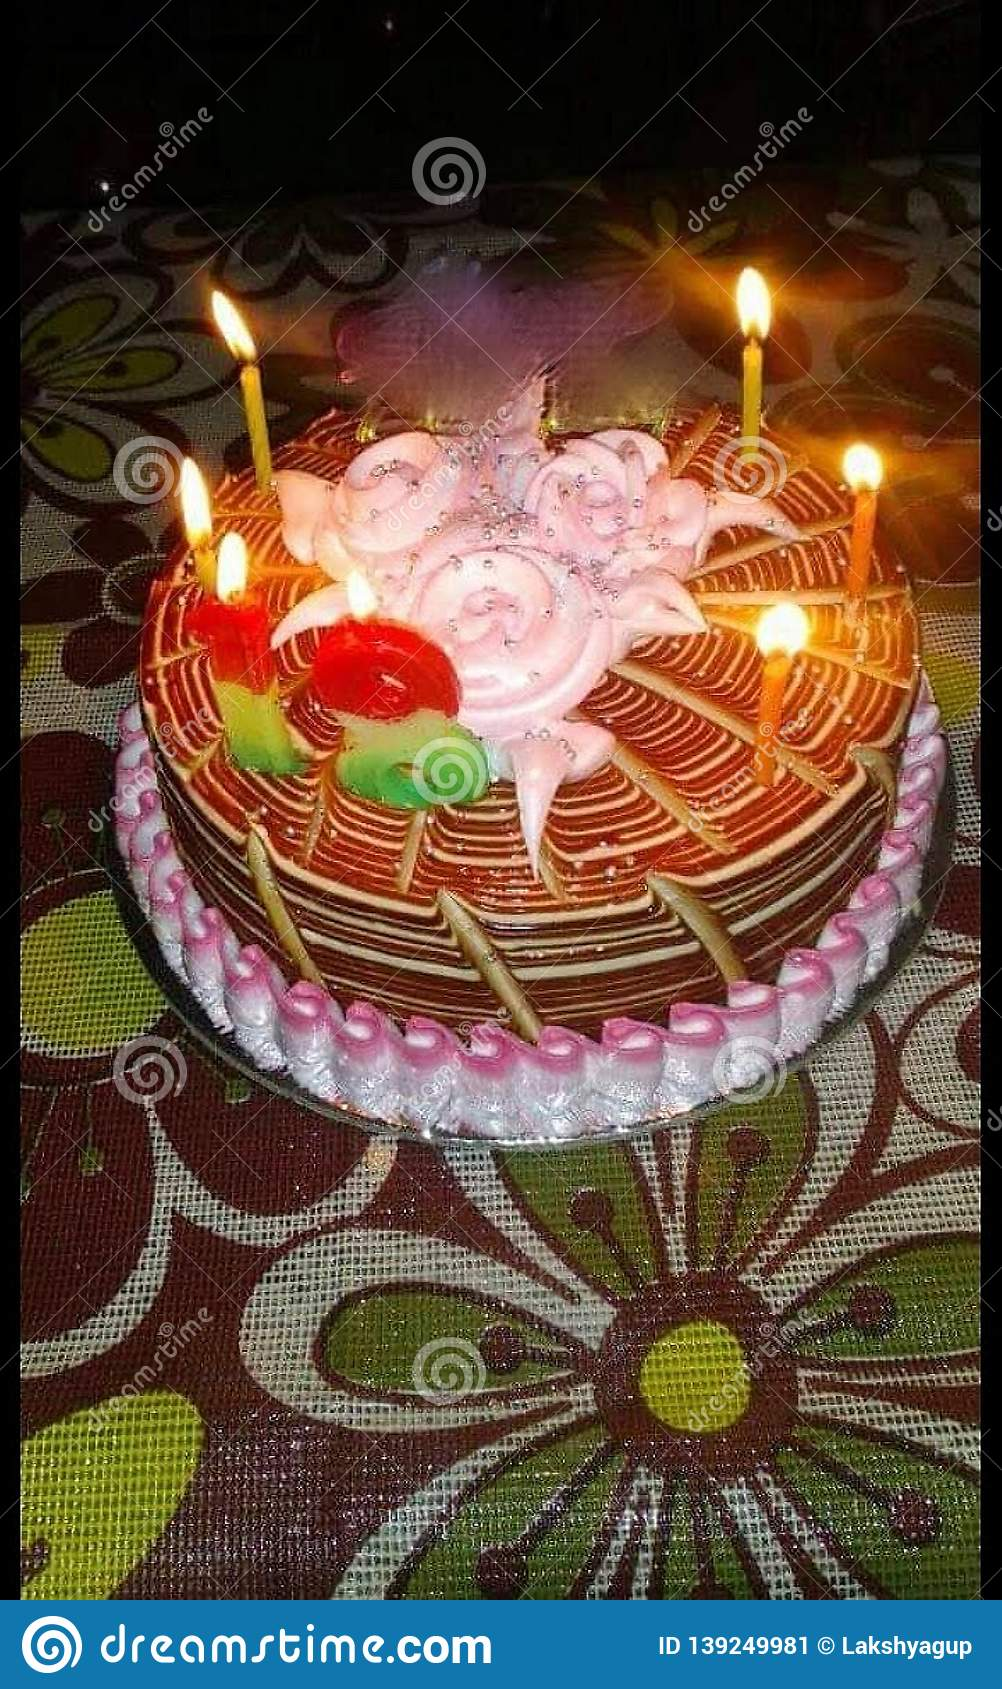 Wondrous It Is The Photo Of A Birthday Cake Looks Beautiful Stock Image Funny Birthday Cards Online Sheoxdamsfinfo